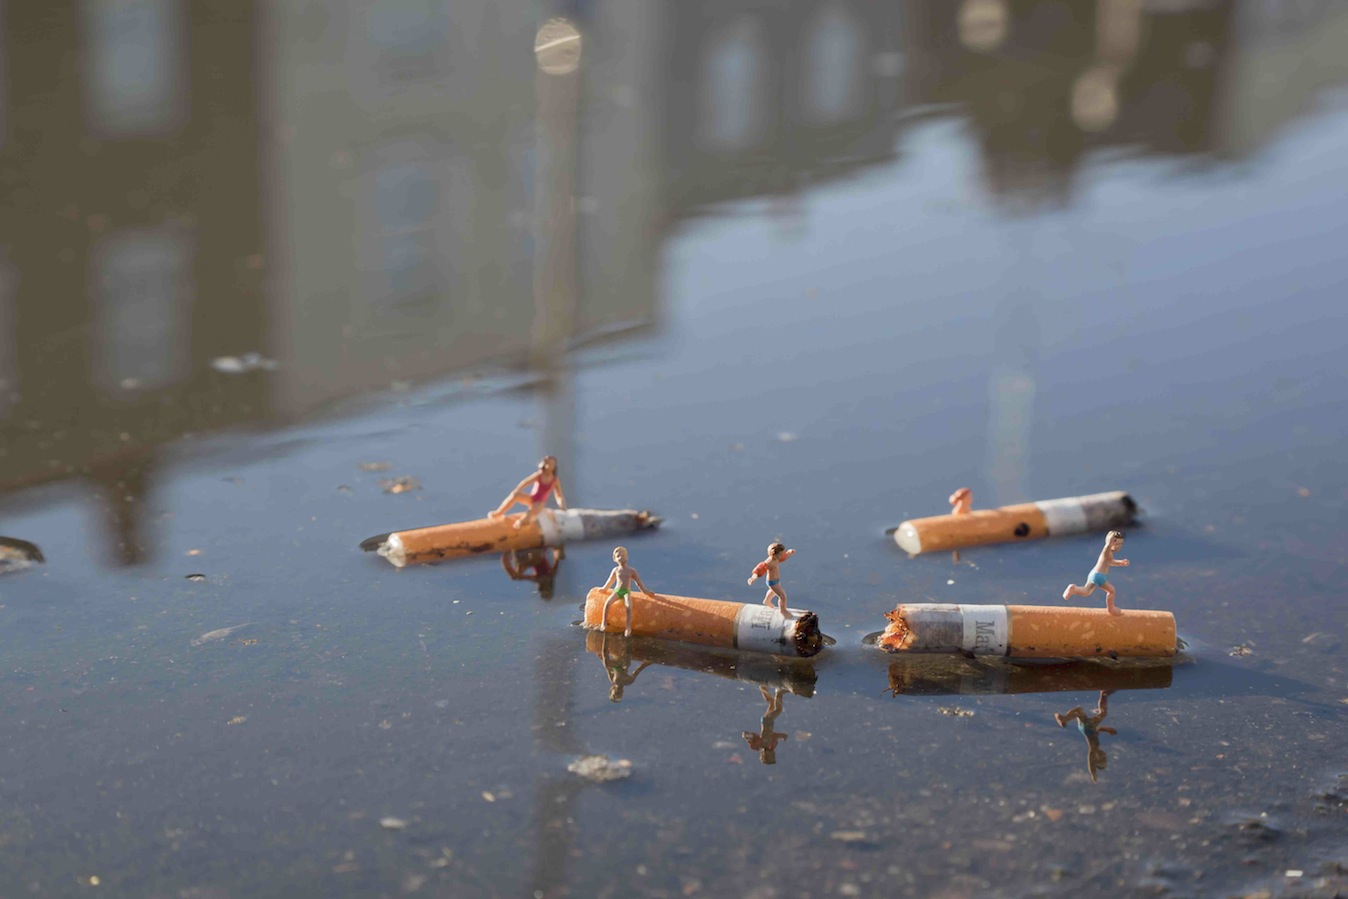 The little people project, la micro street art di Slinkachu | Collater.al 18